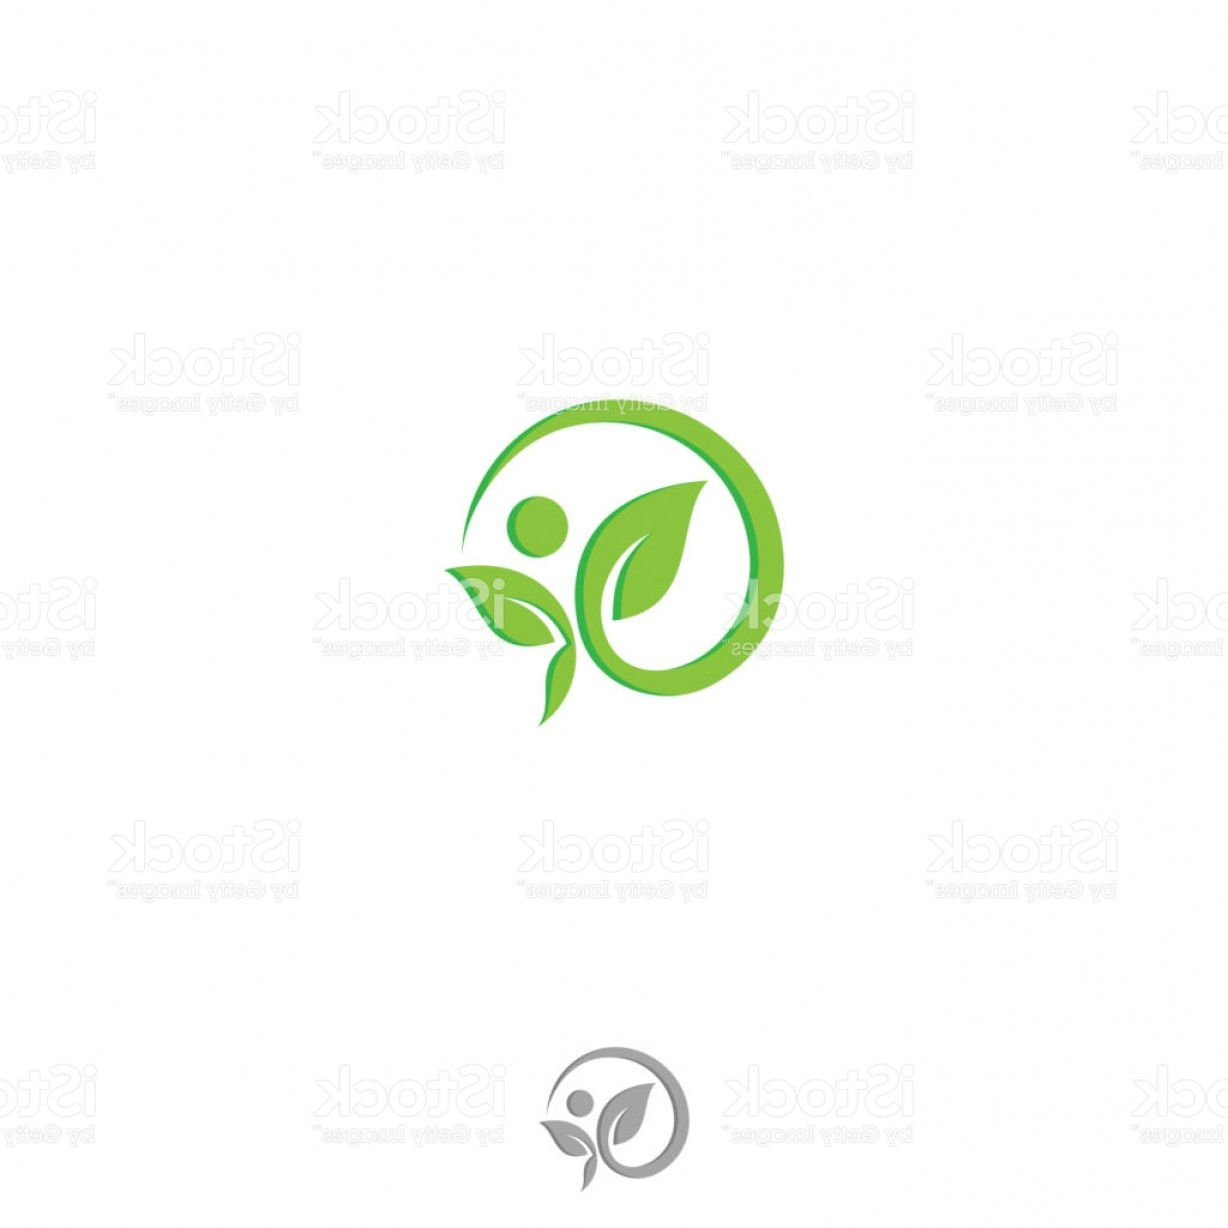 Health Vector Logo: Health Human Vector Logo Concept Illustration In Round Flat Style Design Gm